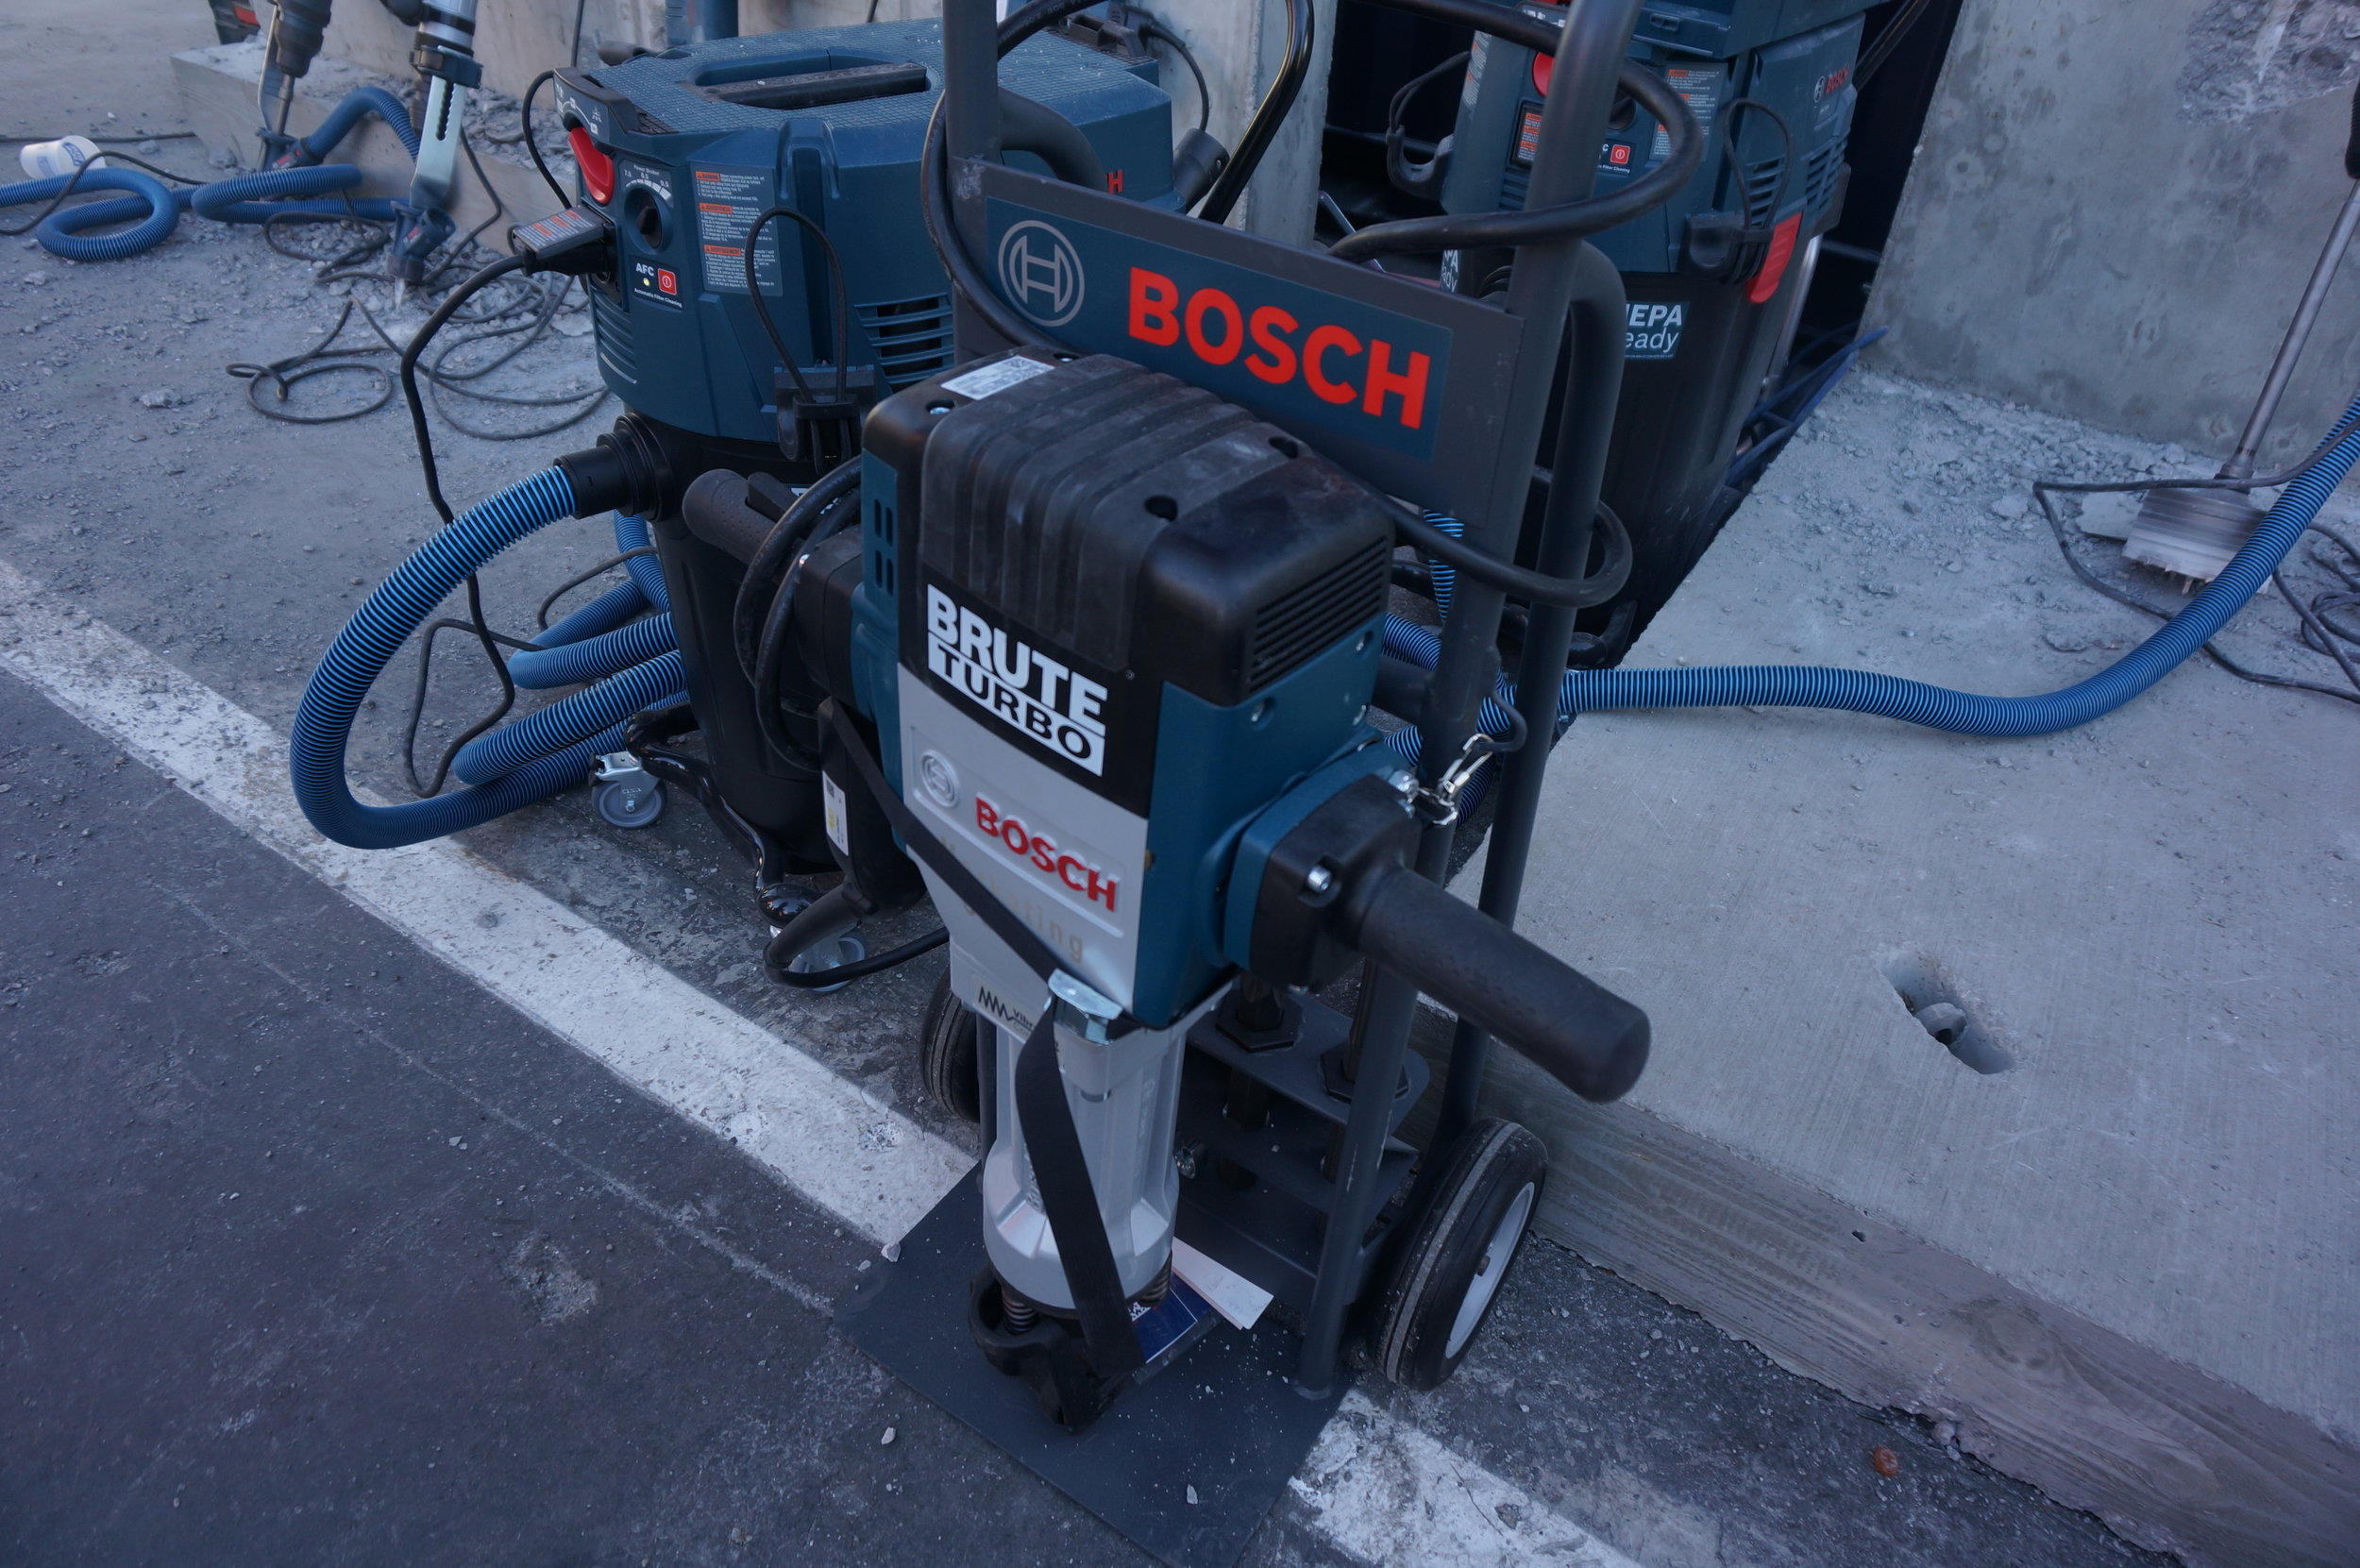 Bosch GSH27-26 Brute Turbo Breaker Hammer with embedded GPS at the World of Concrete 2018